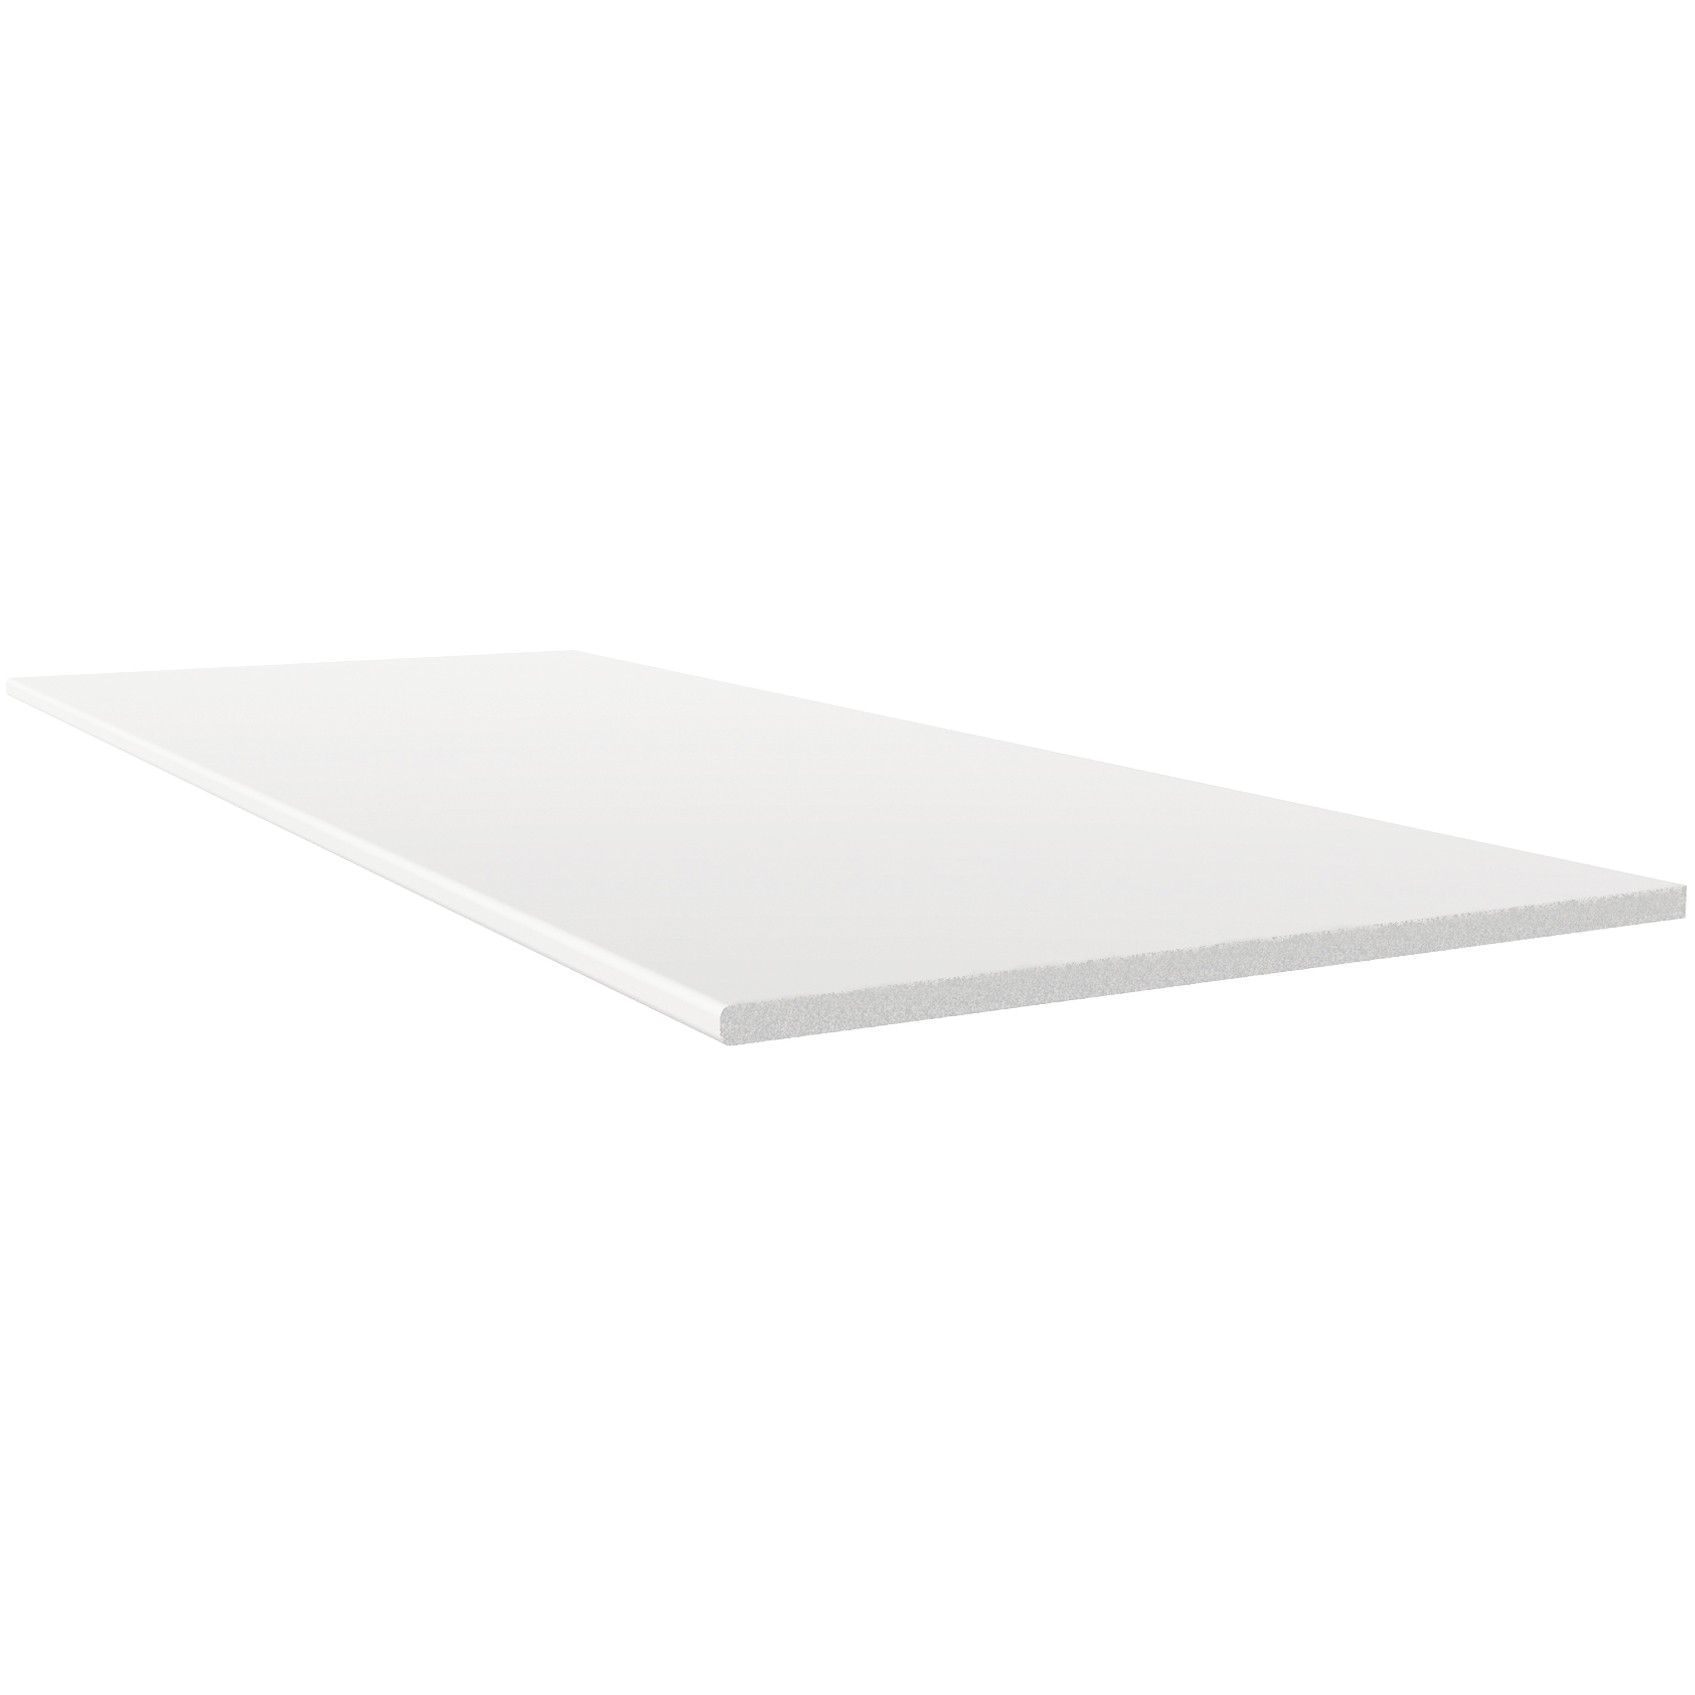 Freefoam 10mm Solid Soffit Board - White, 100mm, 2.5 metre